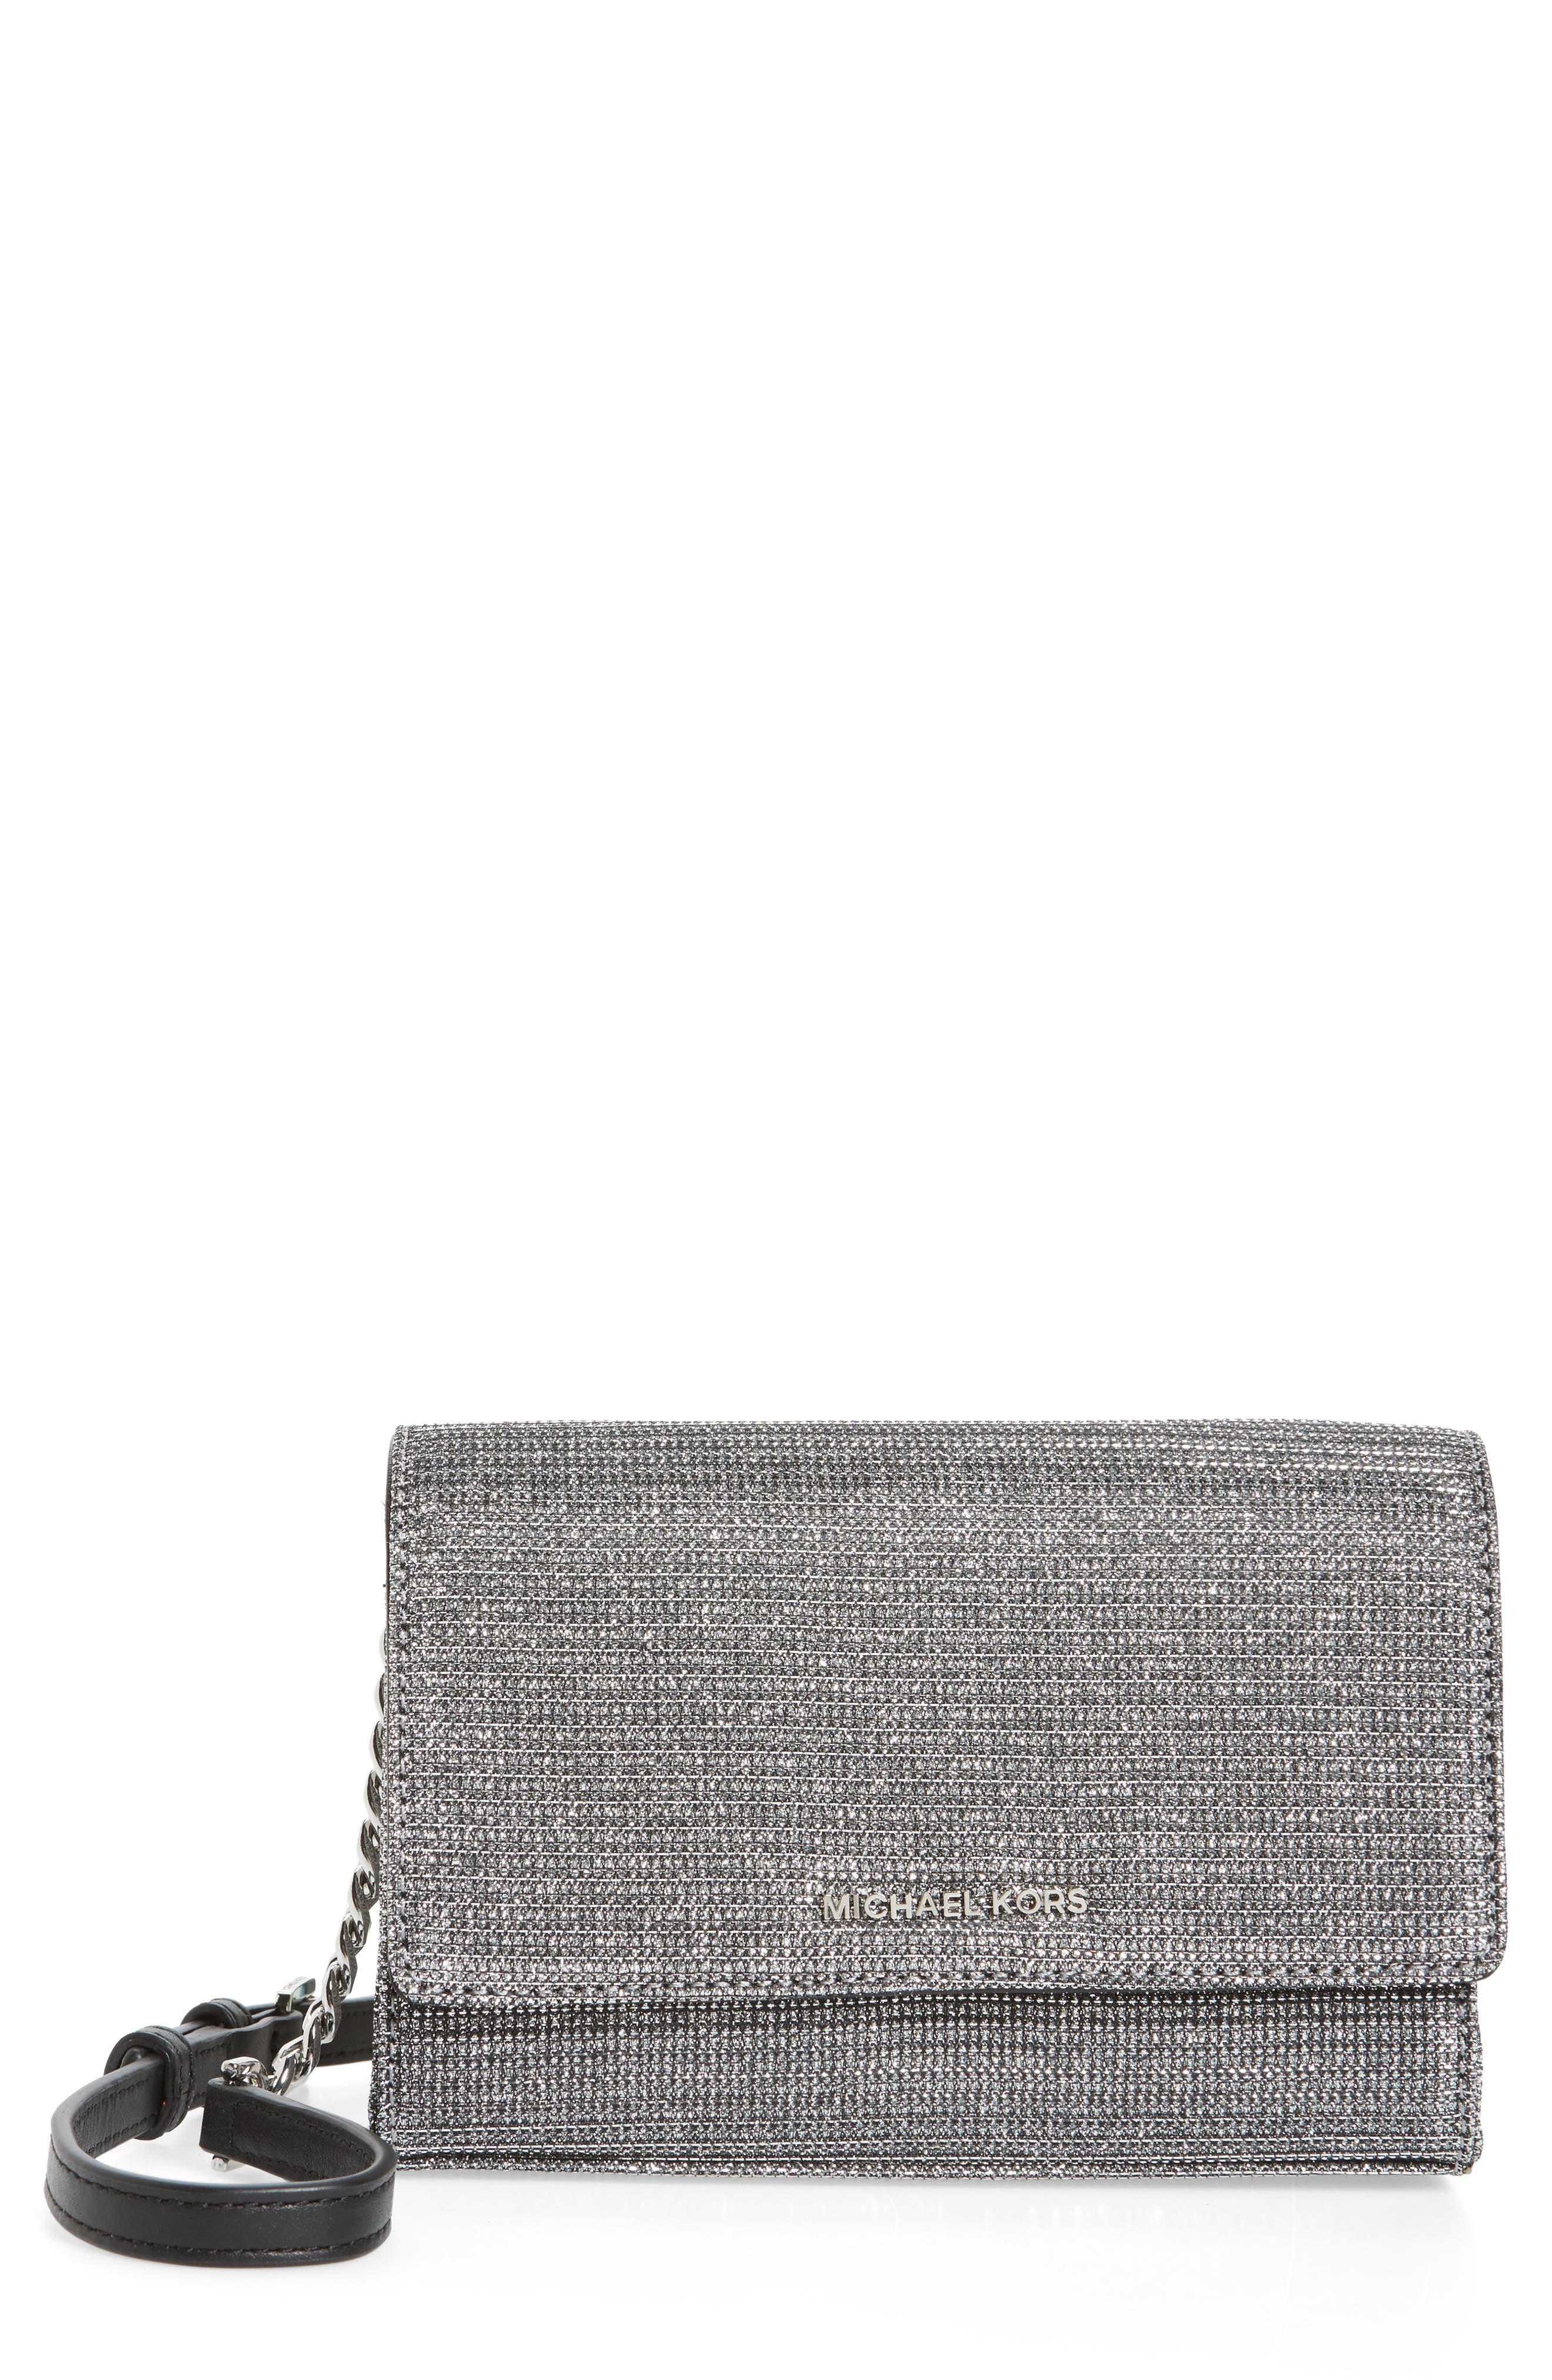 Medium Ruby Convertible Leather Clutch,                         Main,                         color, Black/ Silver